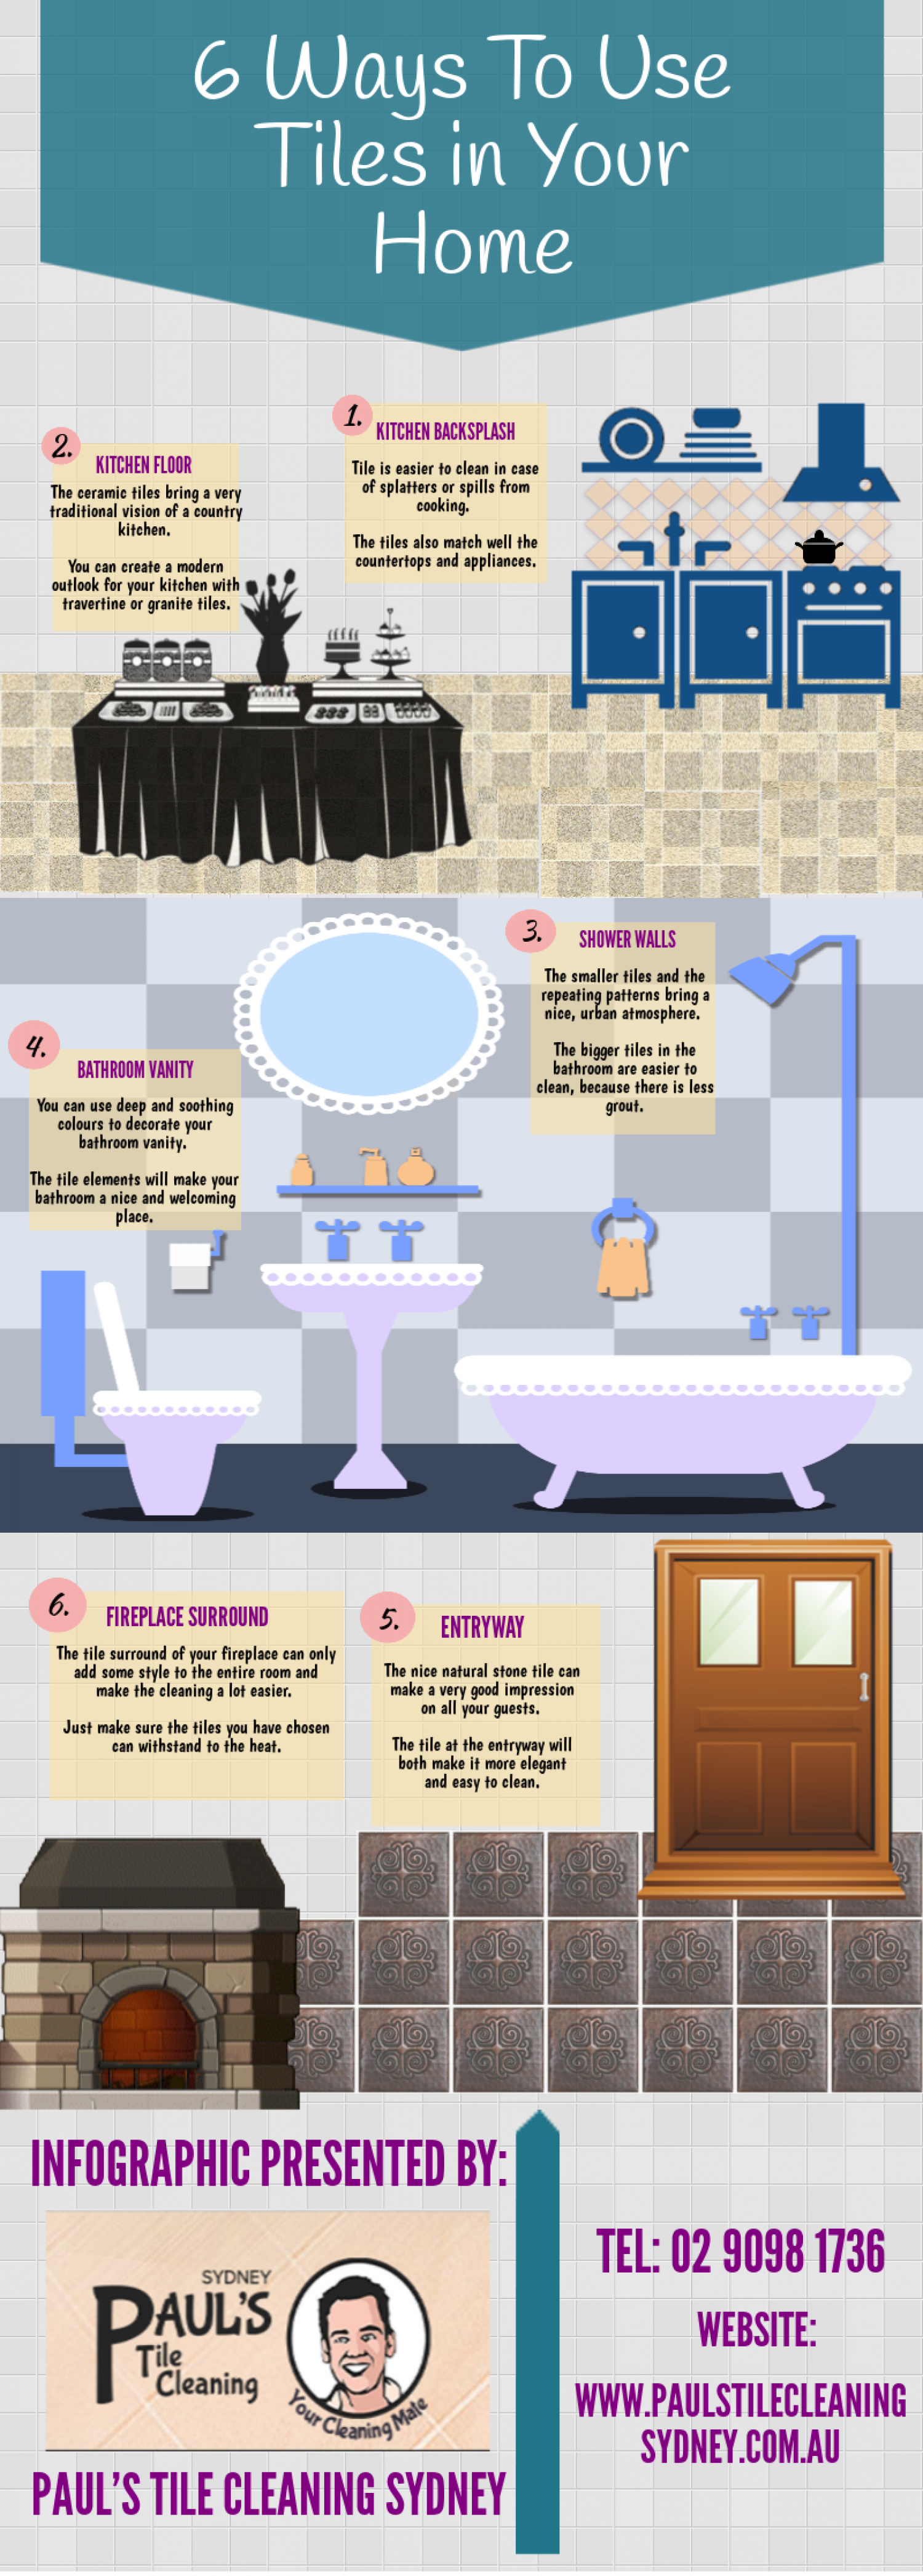 6 Ways to Use Tiles in Your Home Infographic